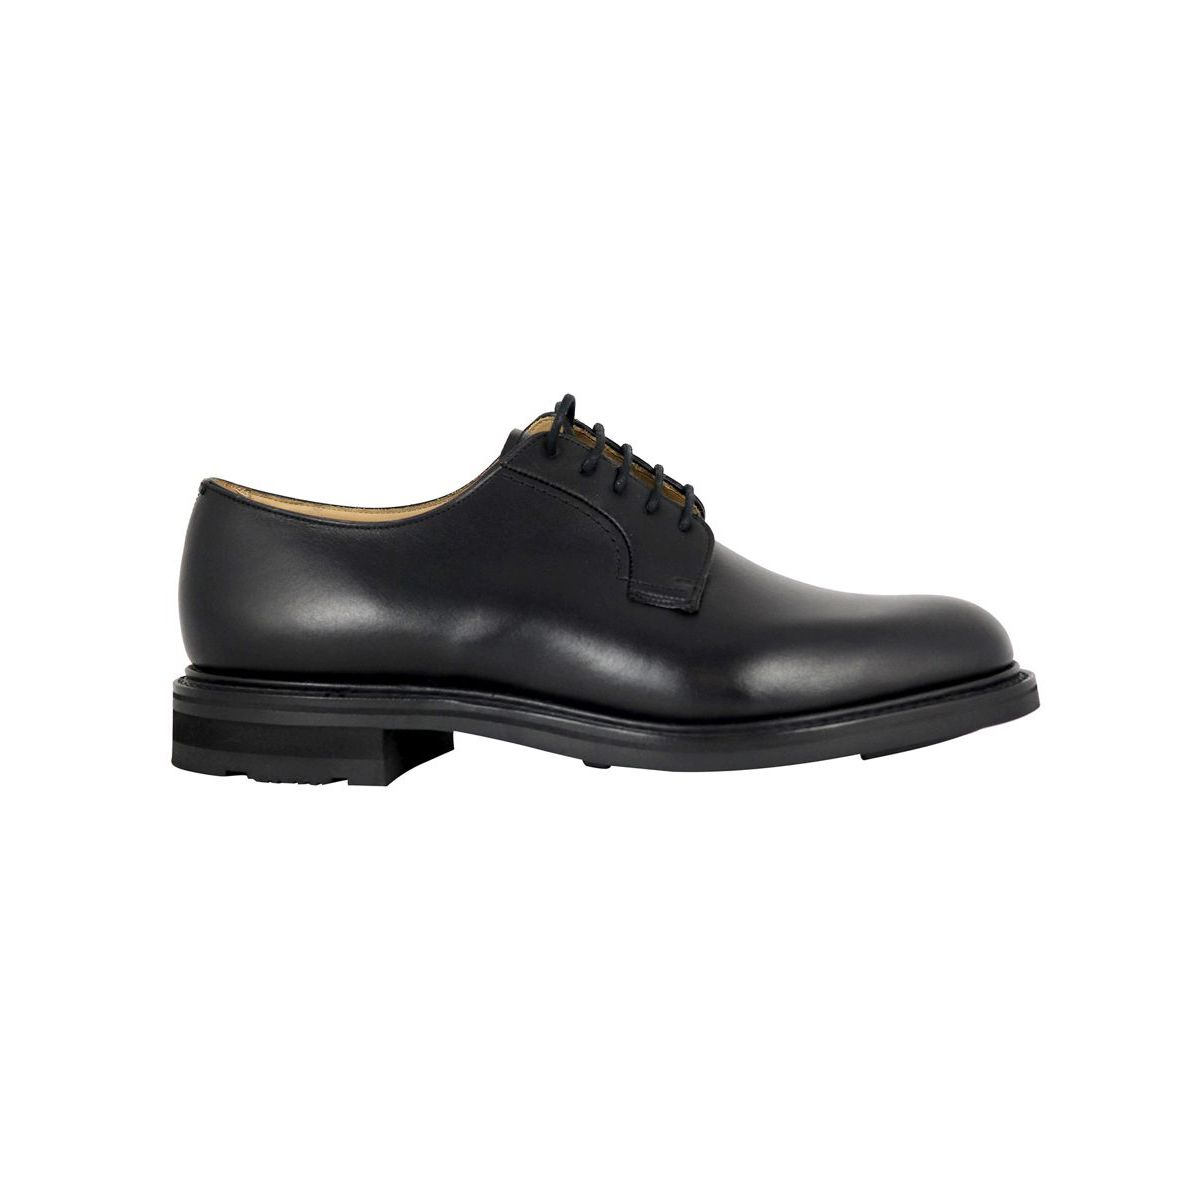 WOODBRIDGE DERBY lace up shoes Black Church's